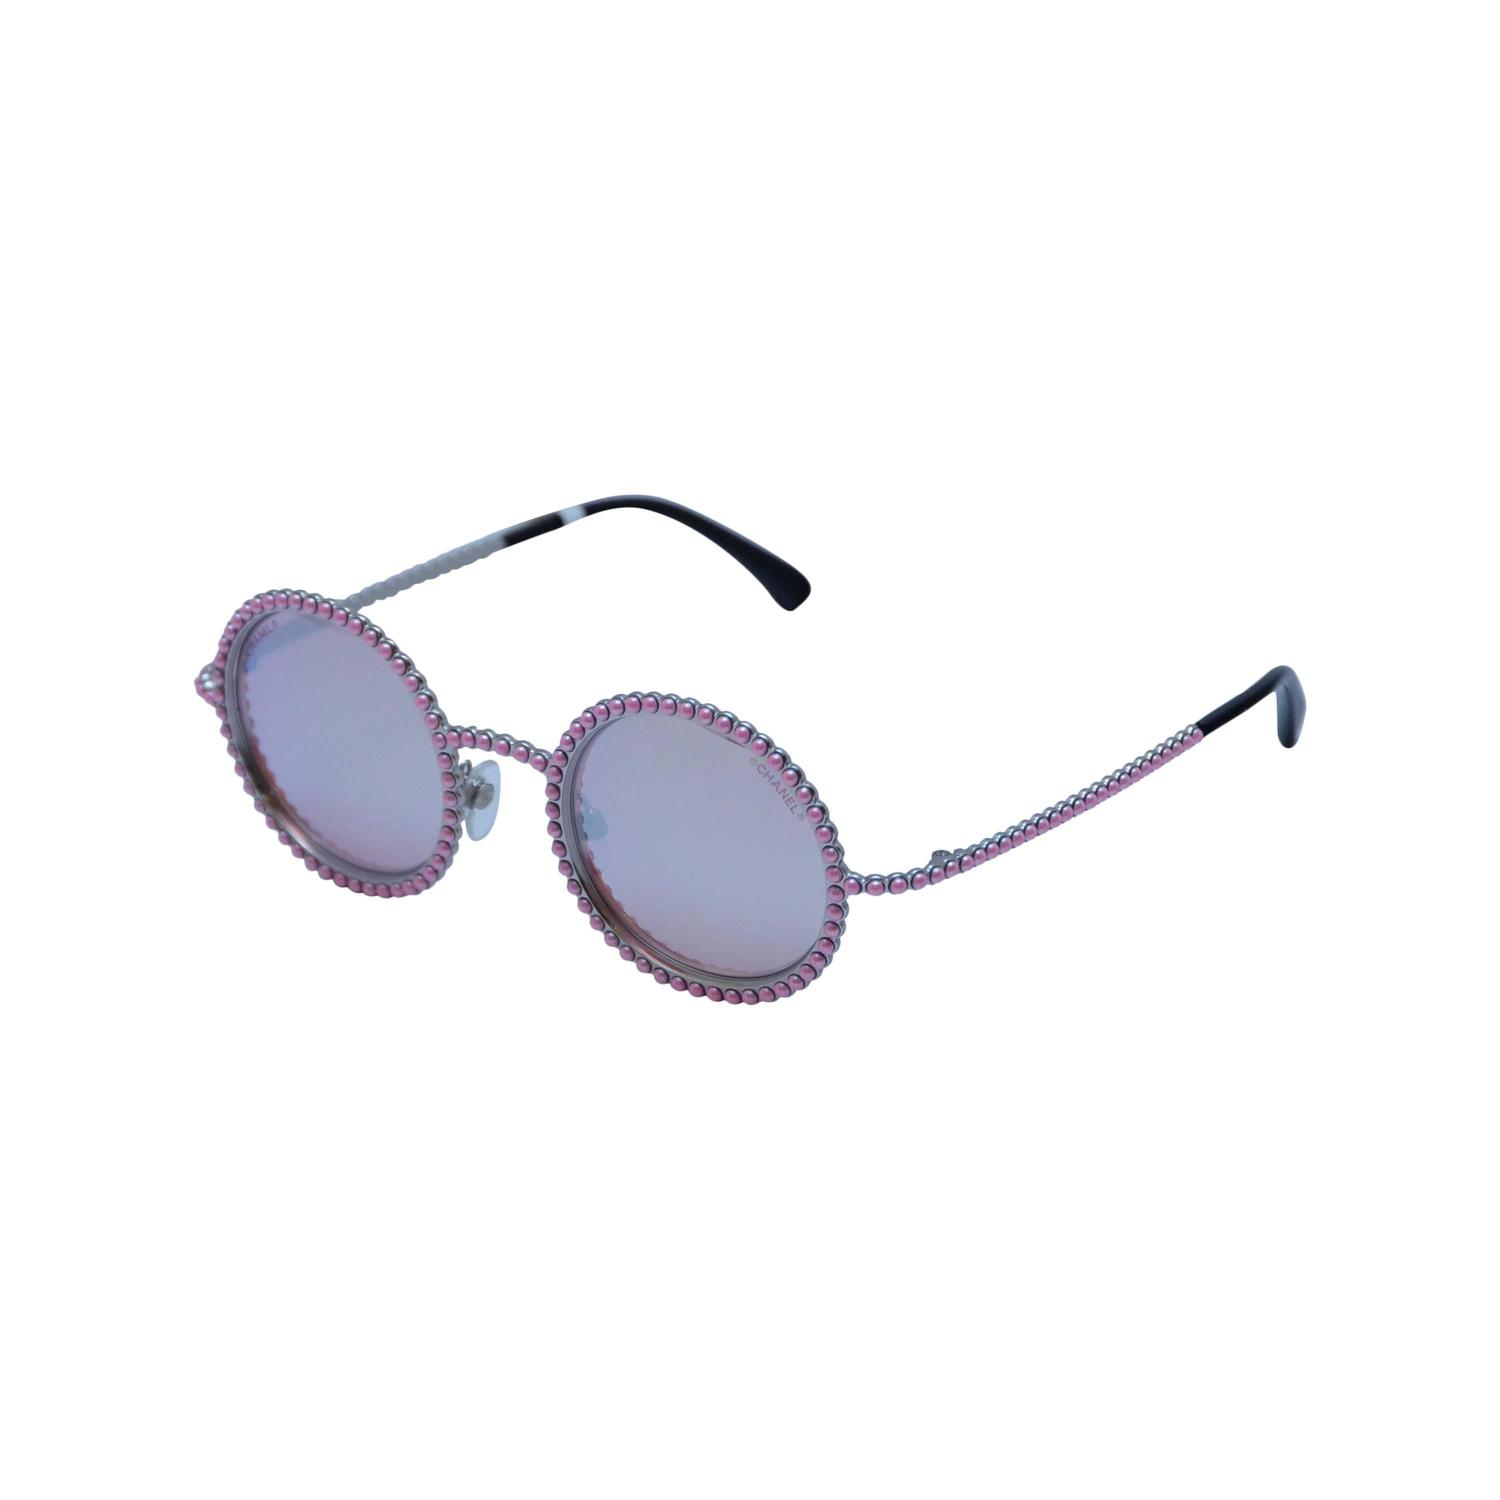 5e3ffb660d7 CHANEL PINK PEARL Sunglasses 2016 Limited Ed. Seen On Rose Depp  Collector  39